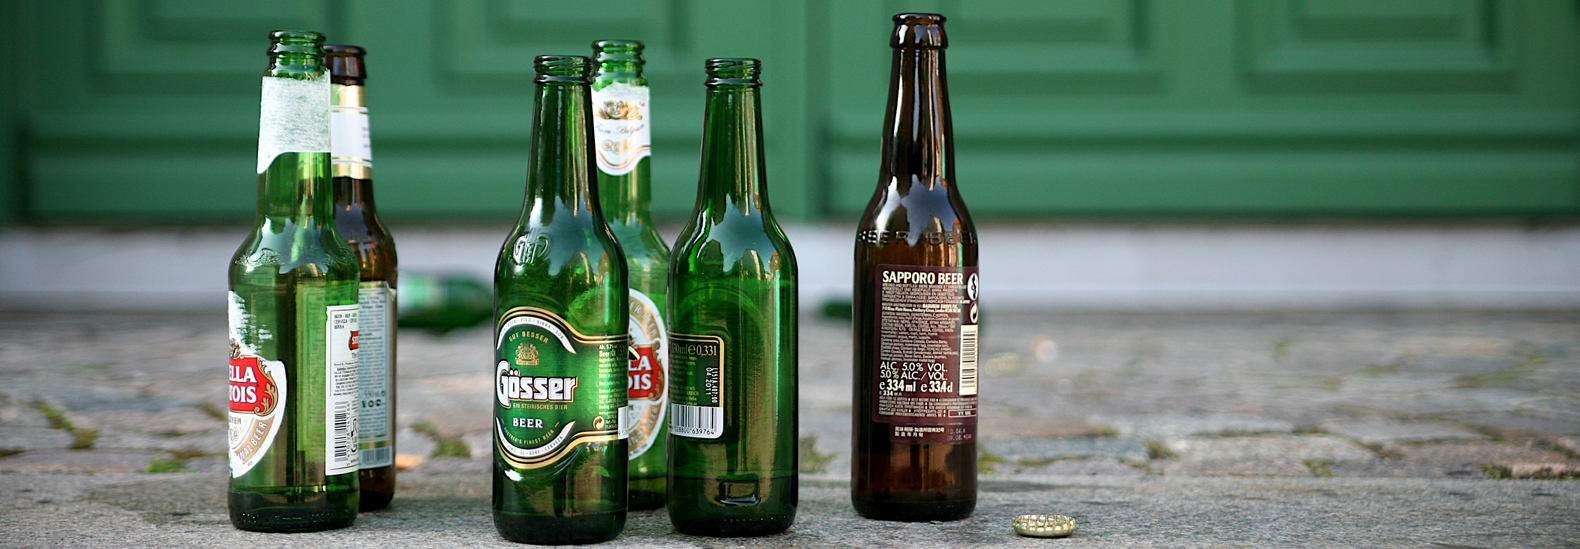 Beer crisis in germany as bottle recycling slows amid heatwaves a beer crisis is brewing in germany as bottle recycling slows amid heatwaves solutioingenieria Image collections